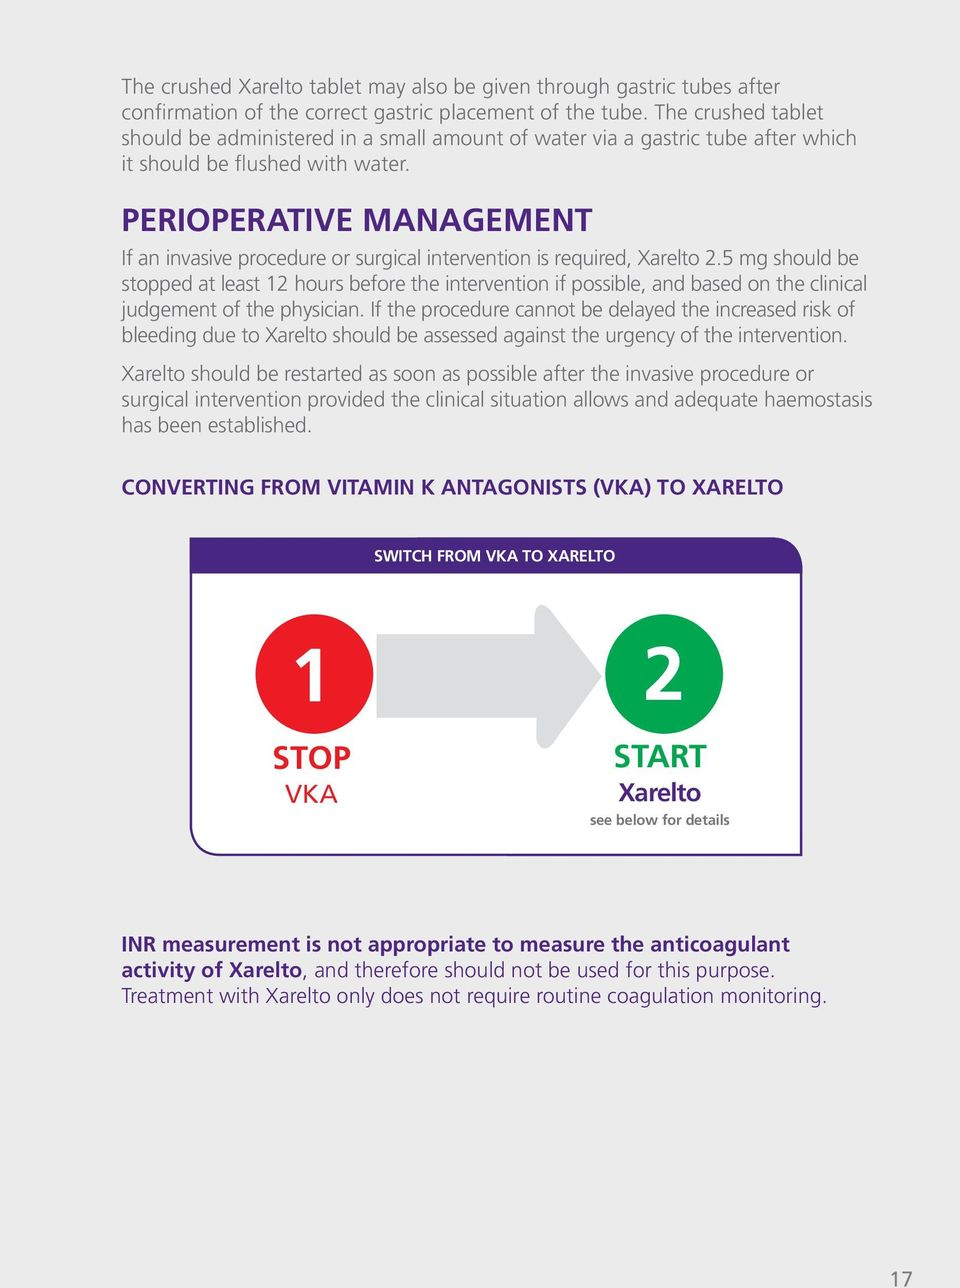 PERIOPERATIVE MANAGEMENT If an invasive procedure or surgical intervention is required, Xarelto 2.